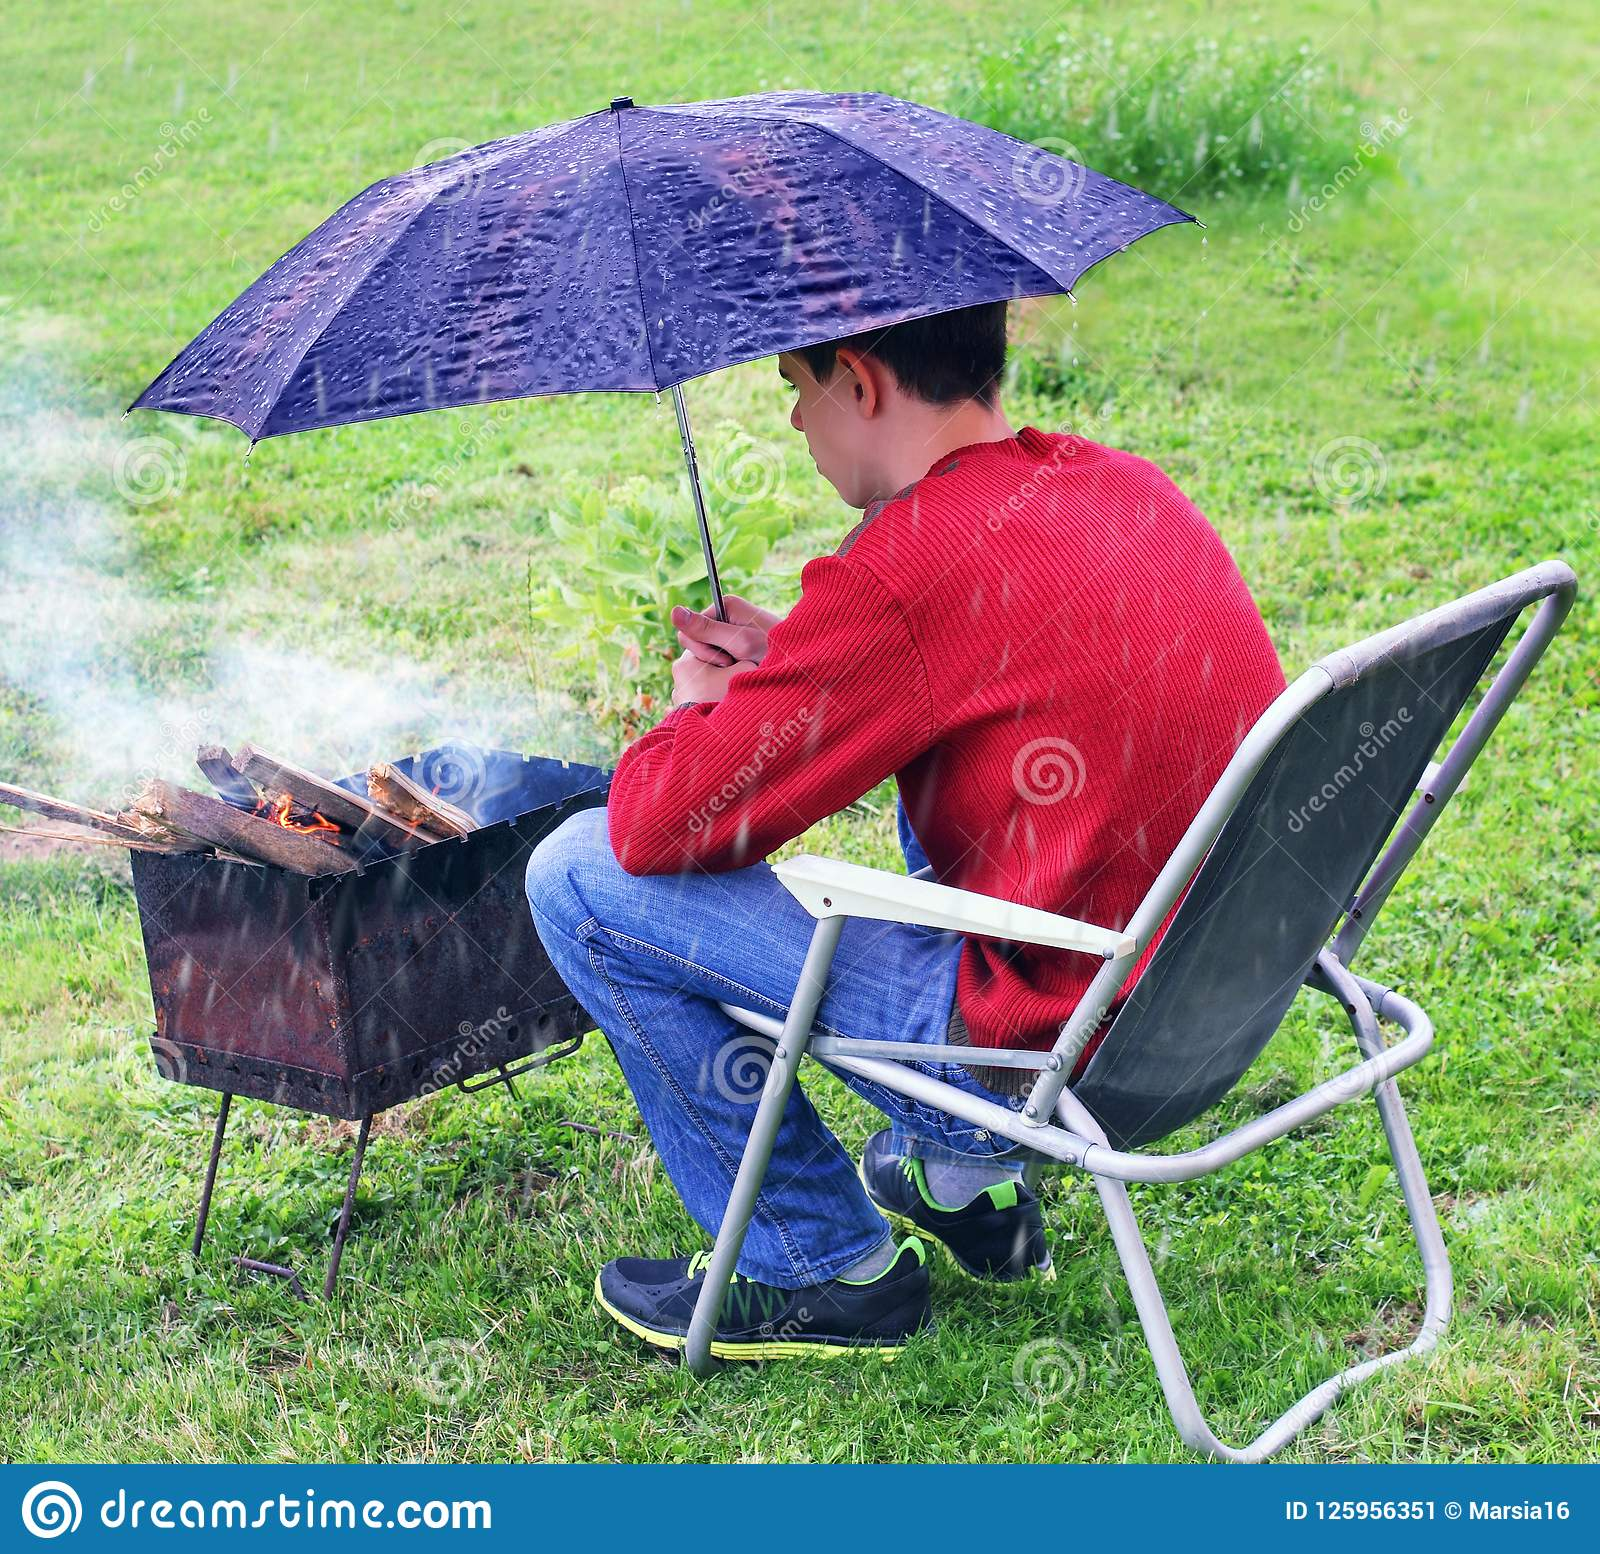 Rainy situation. Protection brazier from rain.